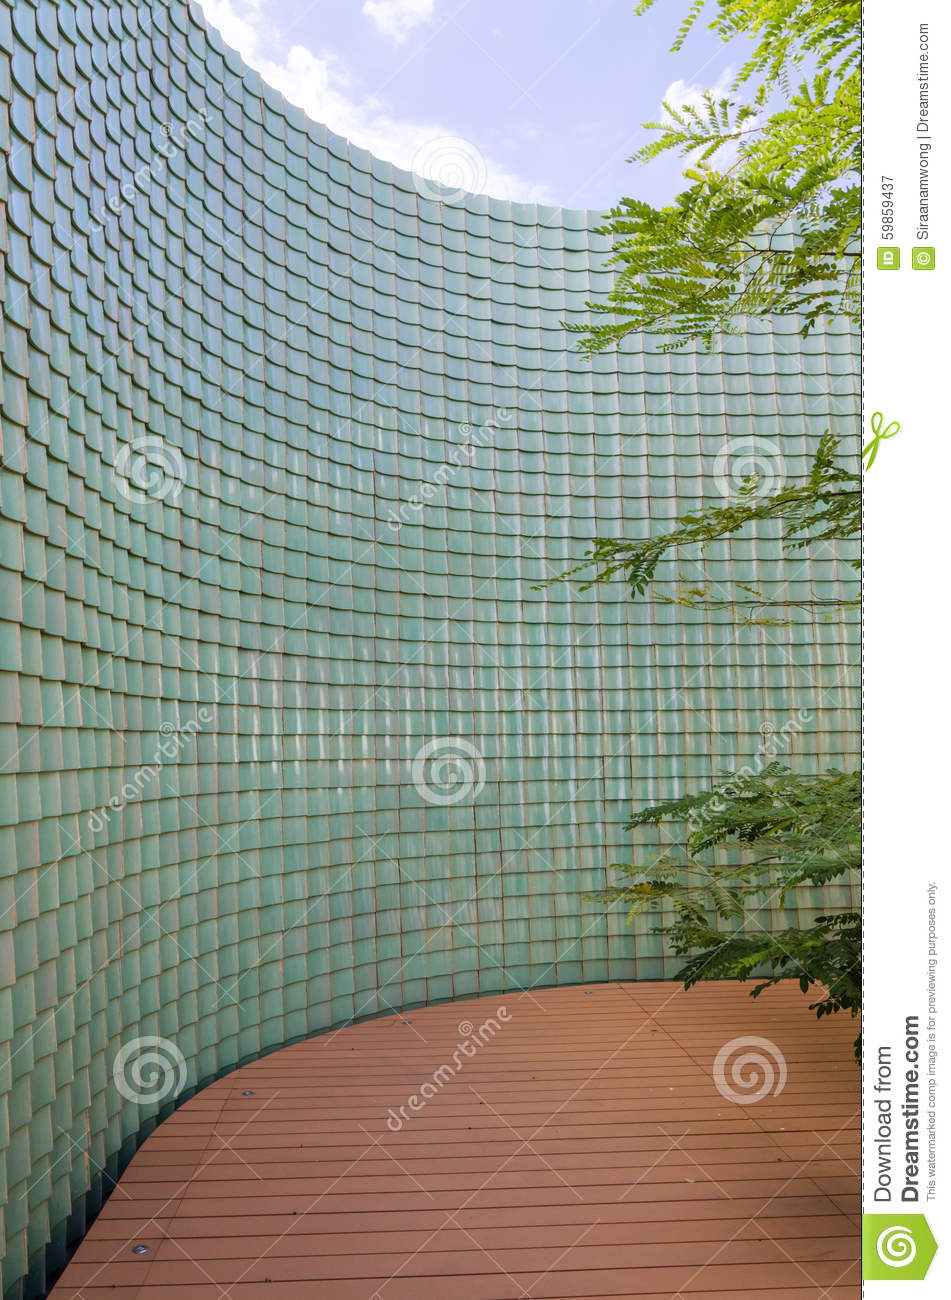 Chinese Green Glazed Tile Wall In The Garden Stock Image - Image of ...